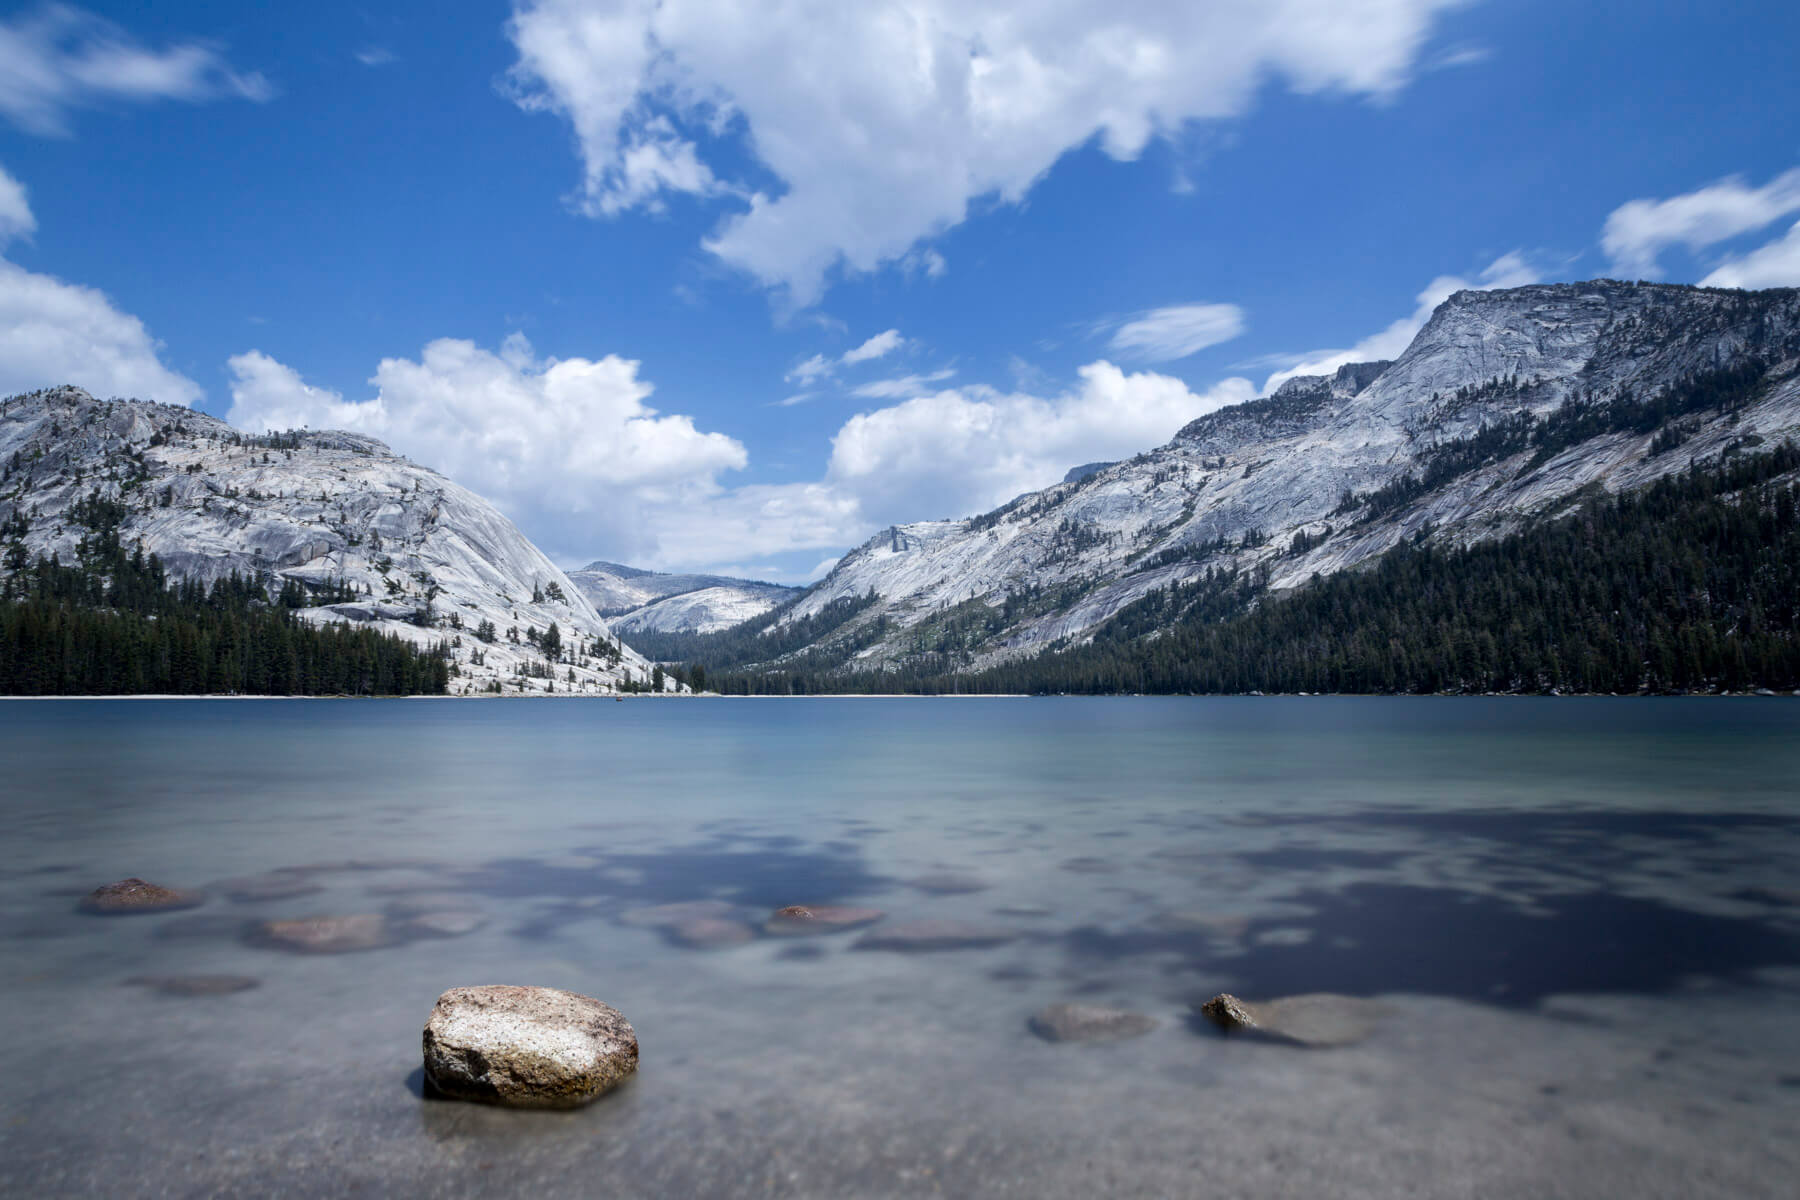 27 second long exposure of Tenaya Lake in Yosemite National Park